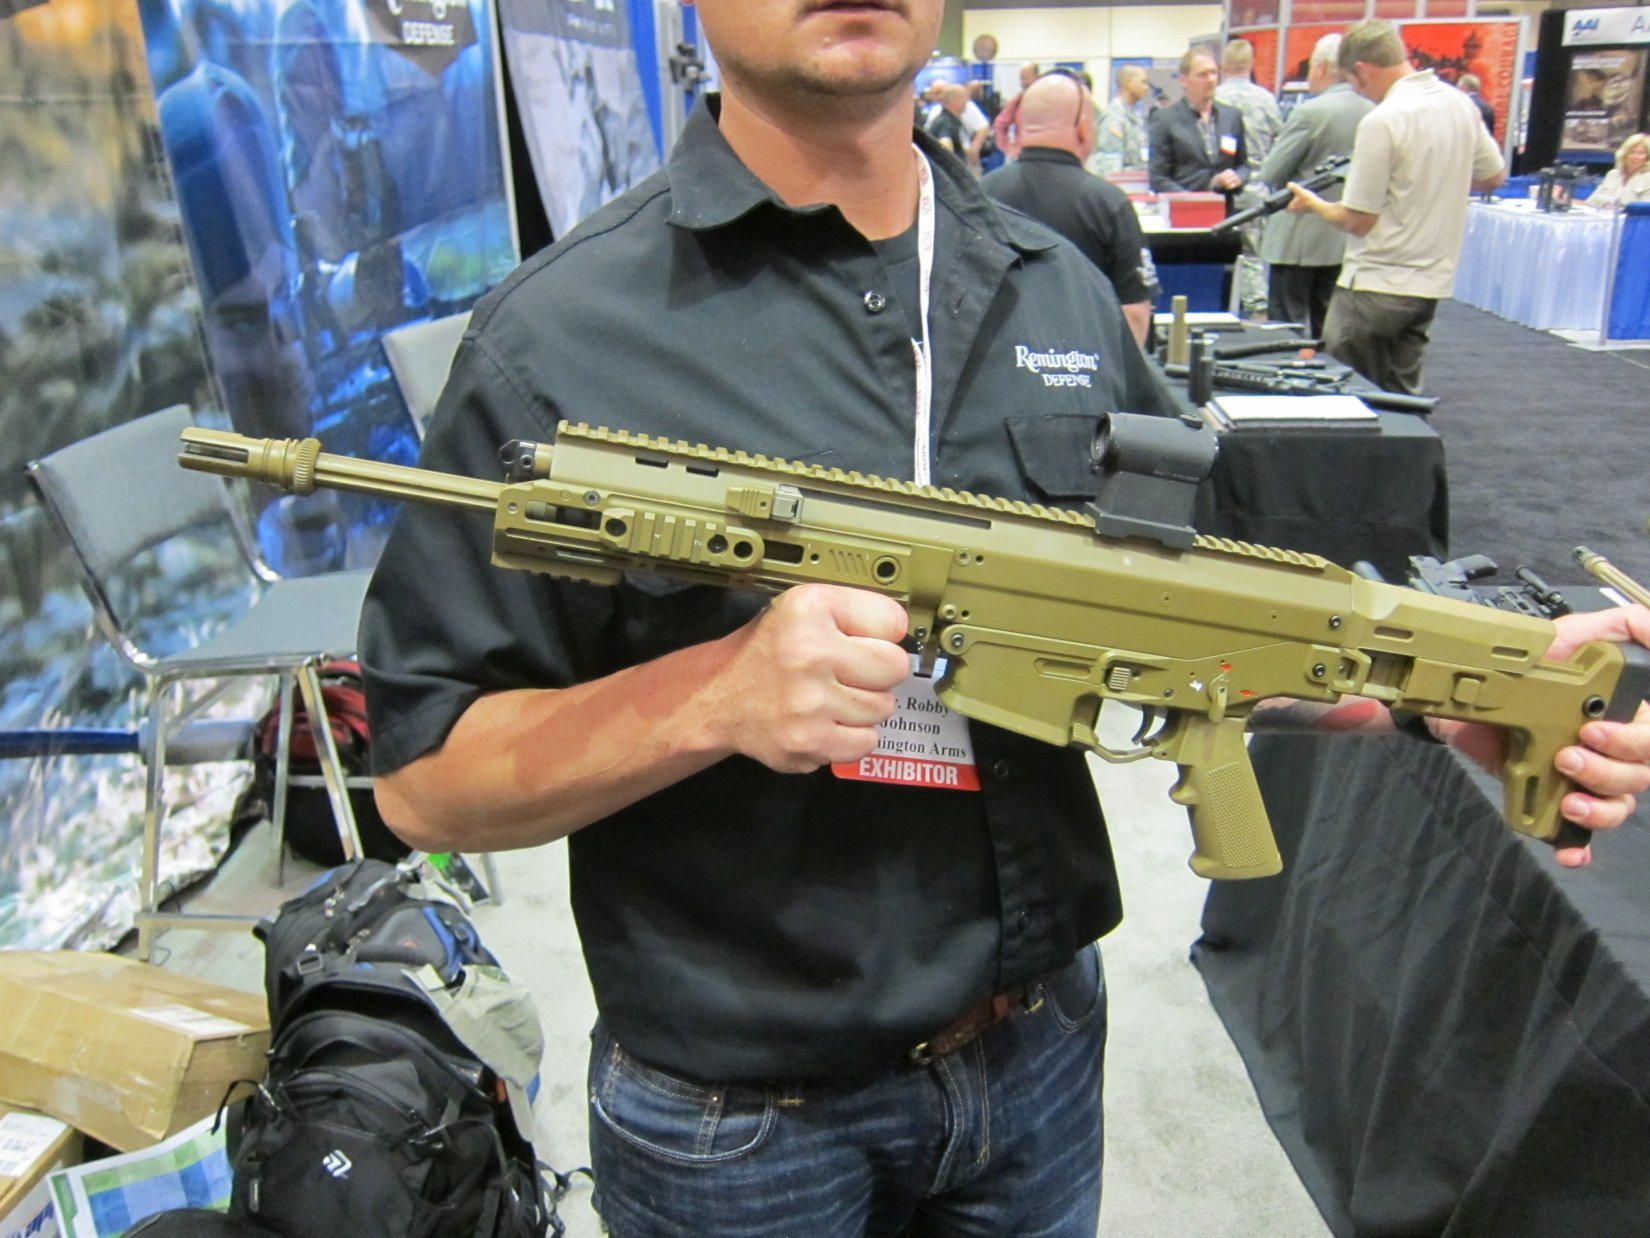 Remington ACR Individual Carbine IC Candidate Robby Johnson NDIA Joint Armaments 2012 DefenseReview.com DR 2 Remington ACR PDW SBR (Adaptive Combat Rifle Personal Defense Weapon Short Barreled Rifle) and Remington Individual Carbine (IC) Candidate: Remington Defense Assault Rifles/Carbines/PDWs at NDIA Joint Armaments Conference 2012 (Video!)